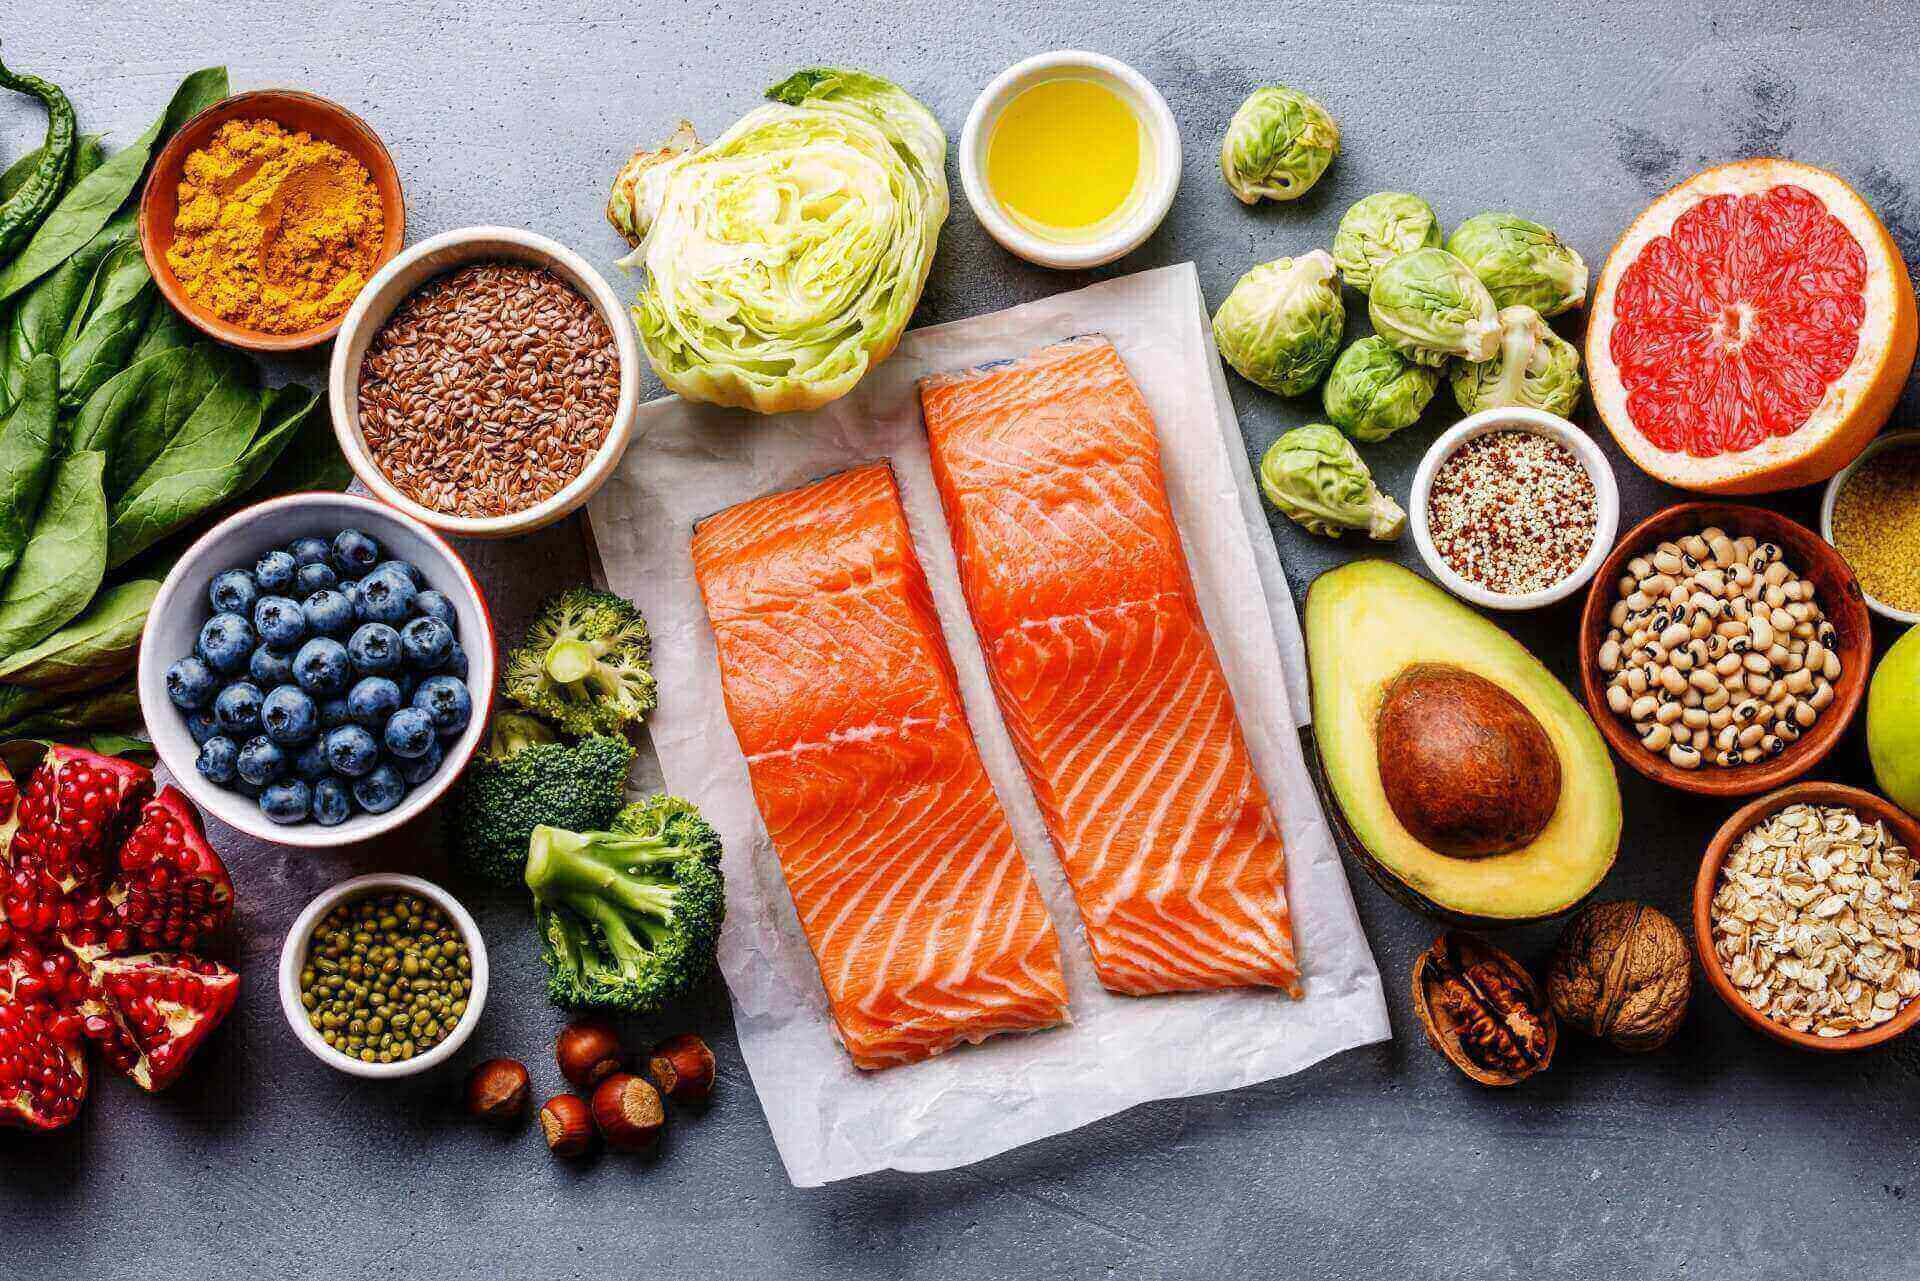 There is an array of food spread out on a counter top. The food includes blueberries, a head of lettuce chopped in half, fish, broccoli, and nuts.